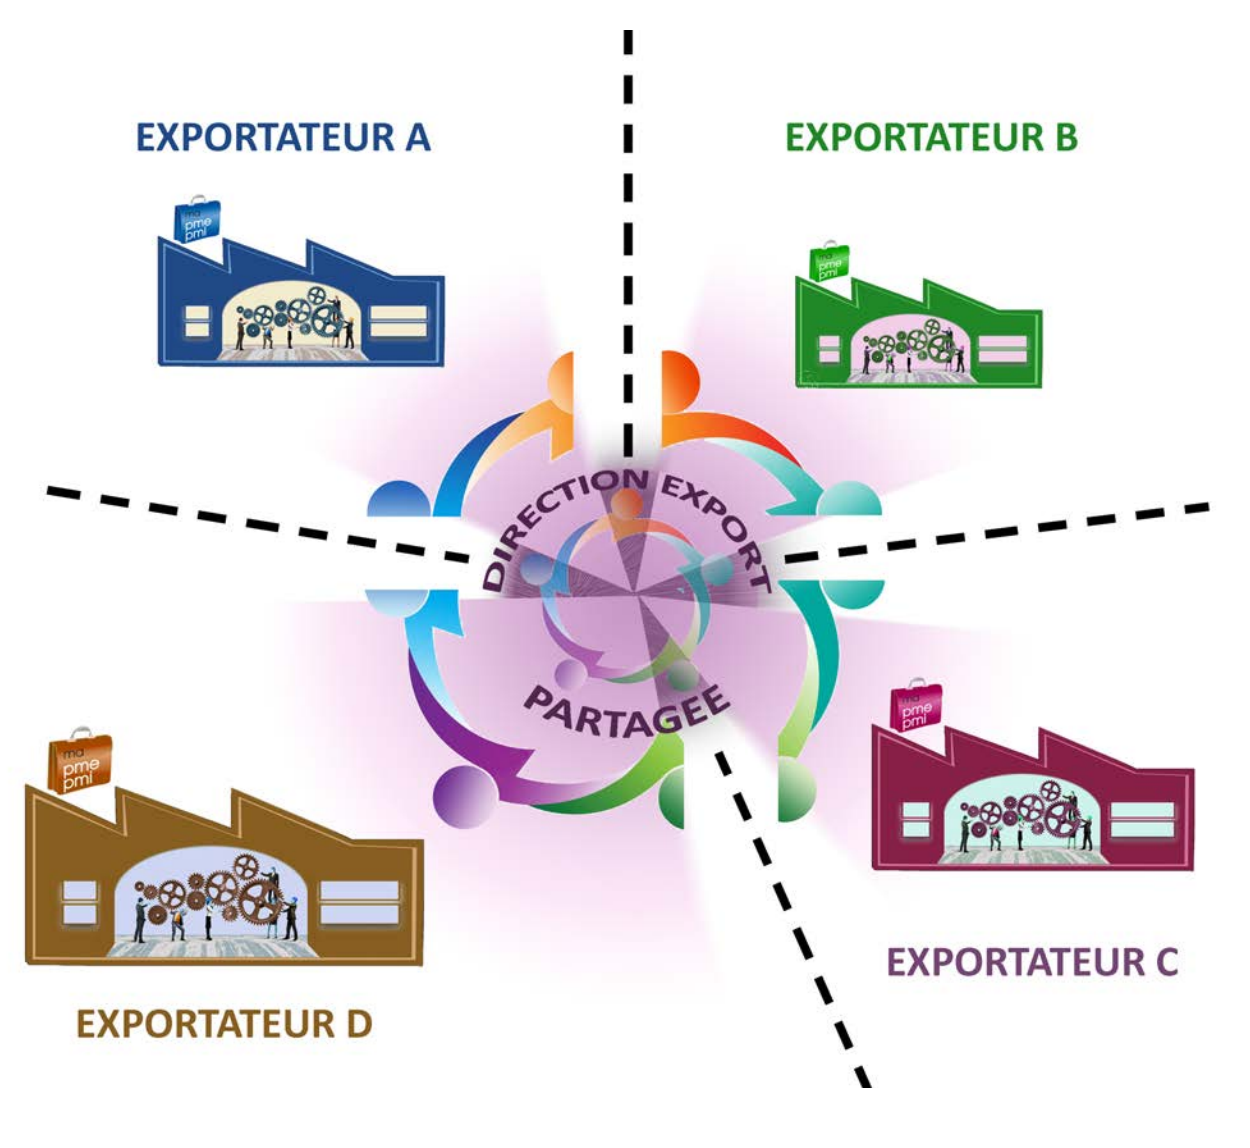 externaliser l'exportation : direction export partagée